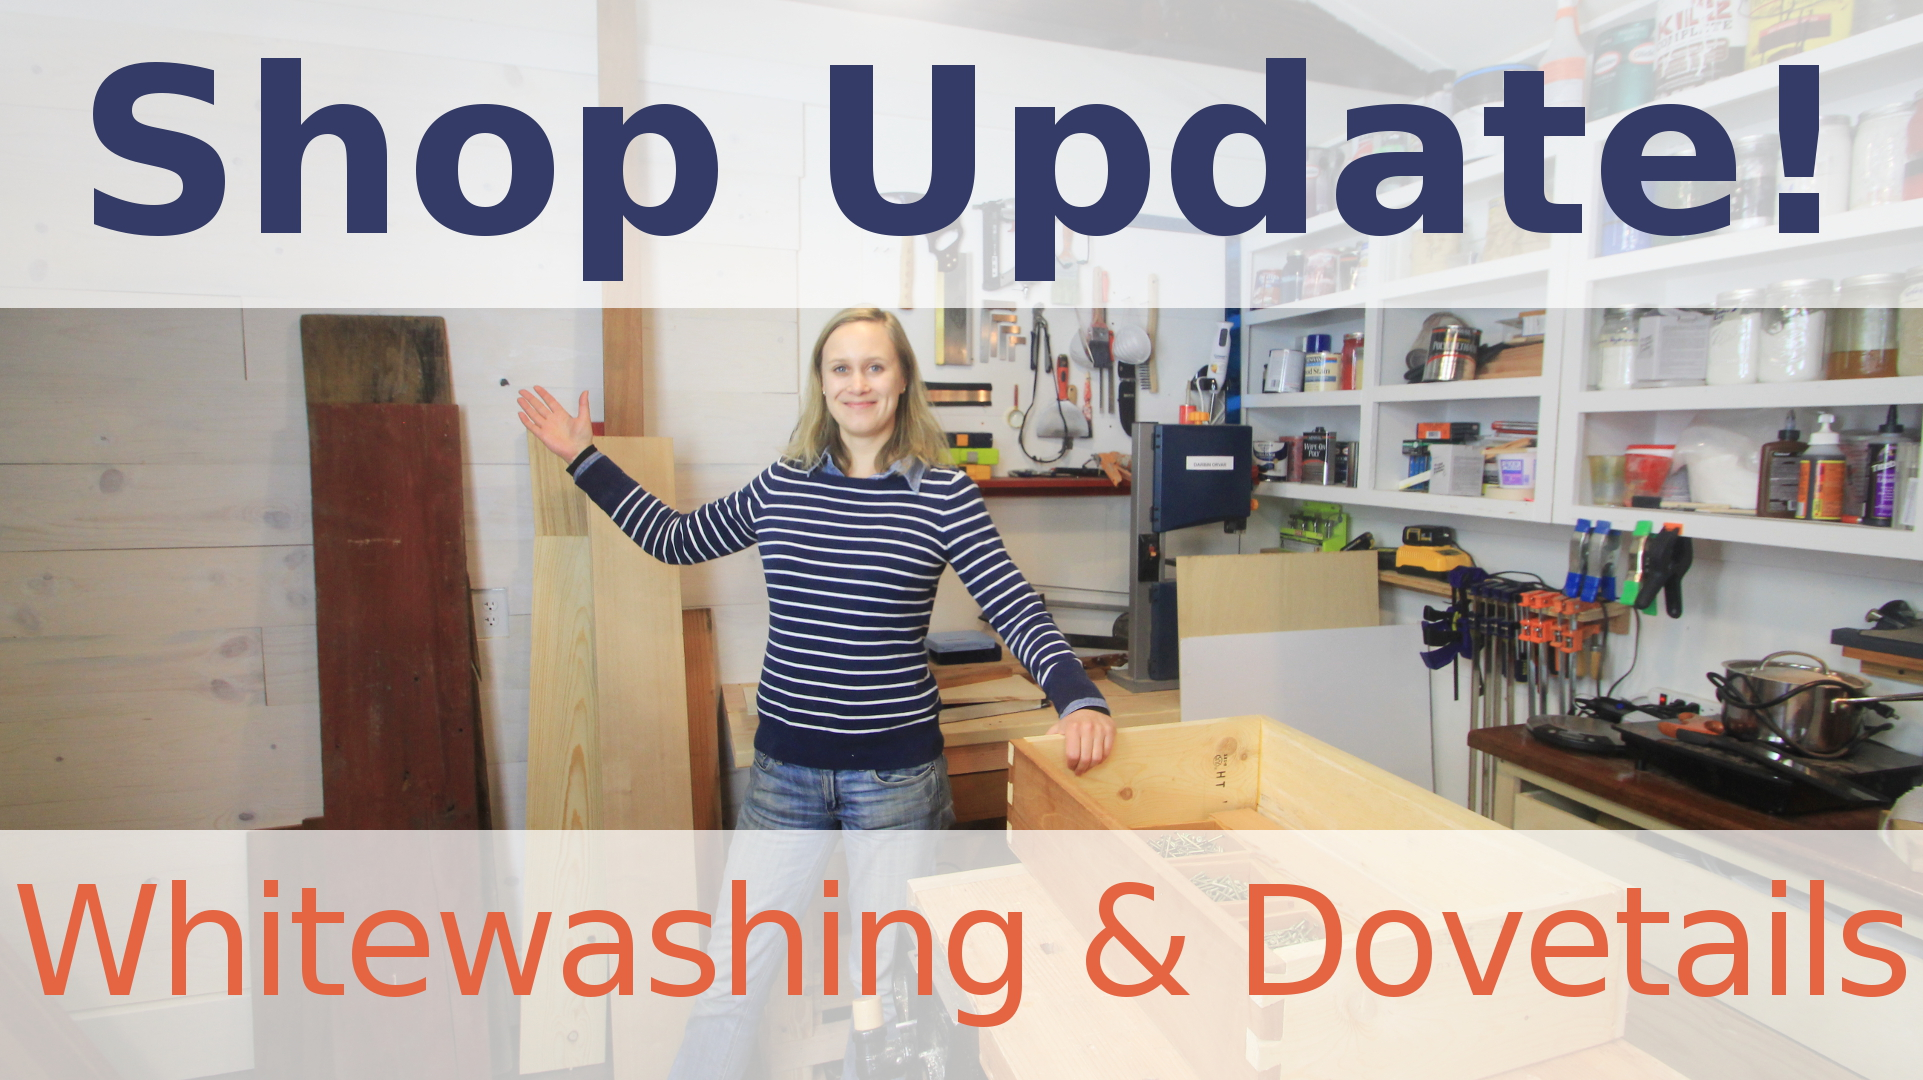 In this shop update I build a new wall and add whitewashing to it. Then I continue finishing my new workbench by adding dovetailed drawers and some storage space underneath.